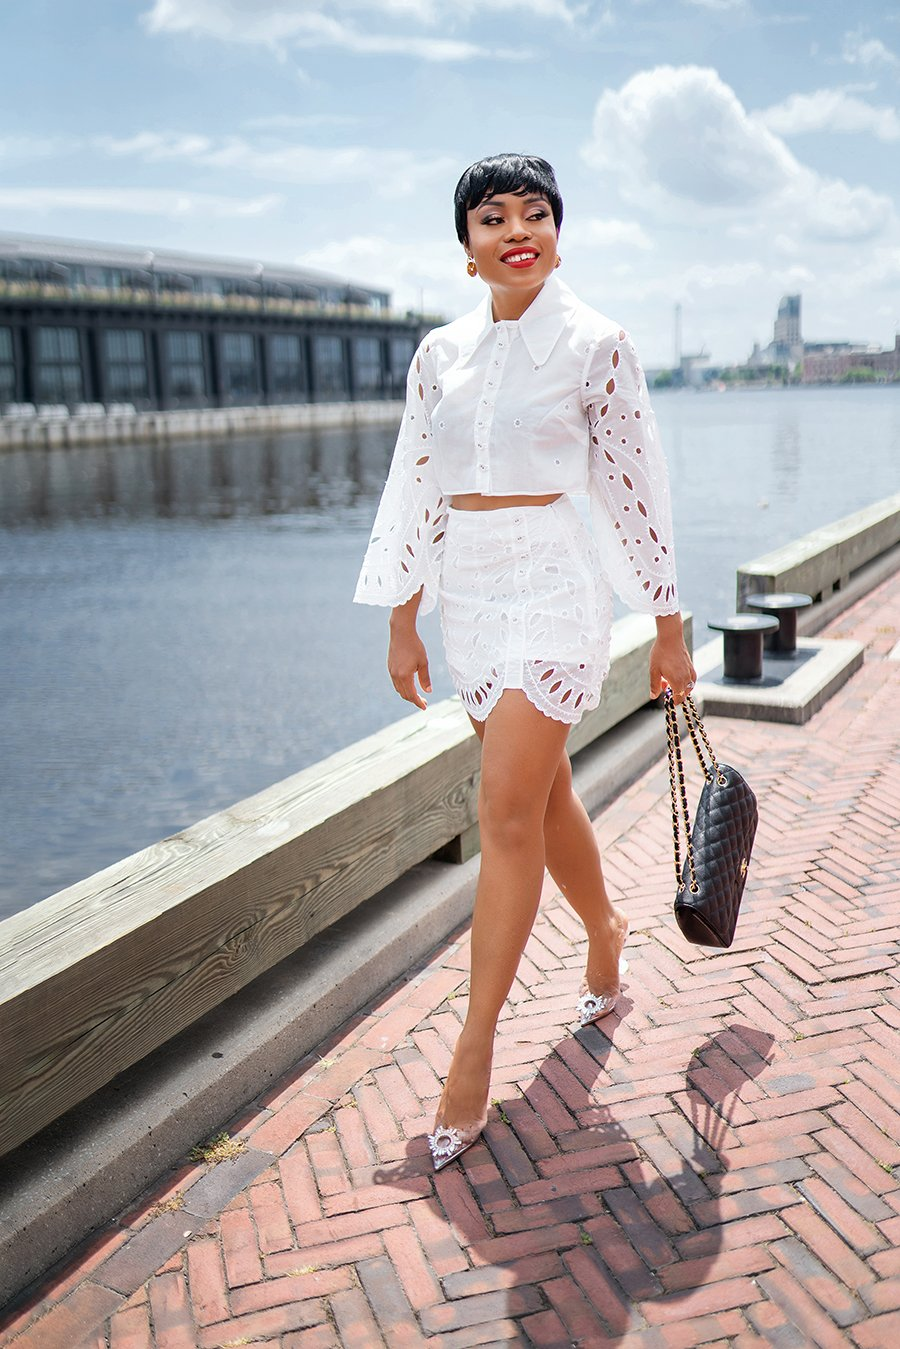 stella-adewunmi-of-jadore-fashion-blog-shares-summer-white-outfit